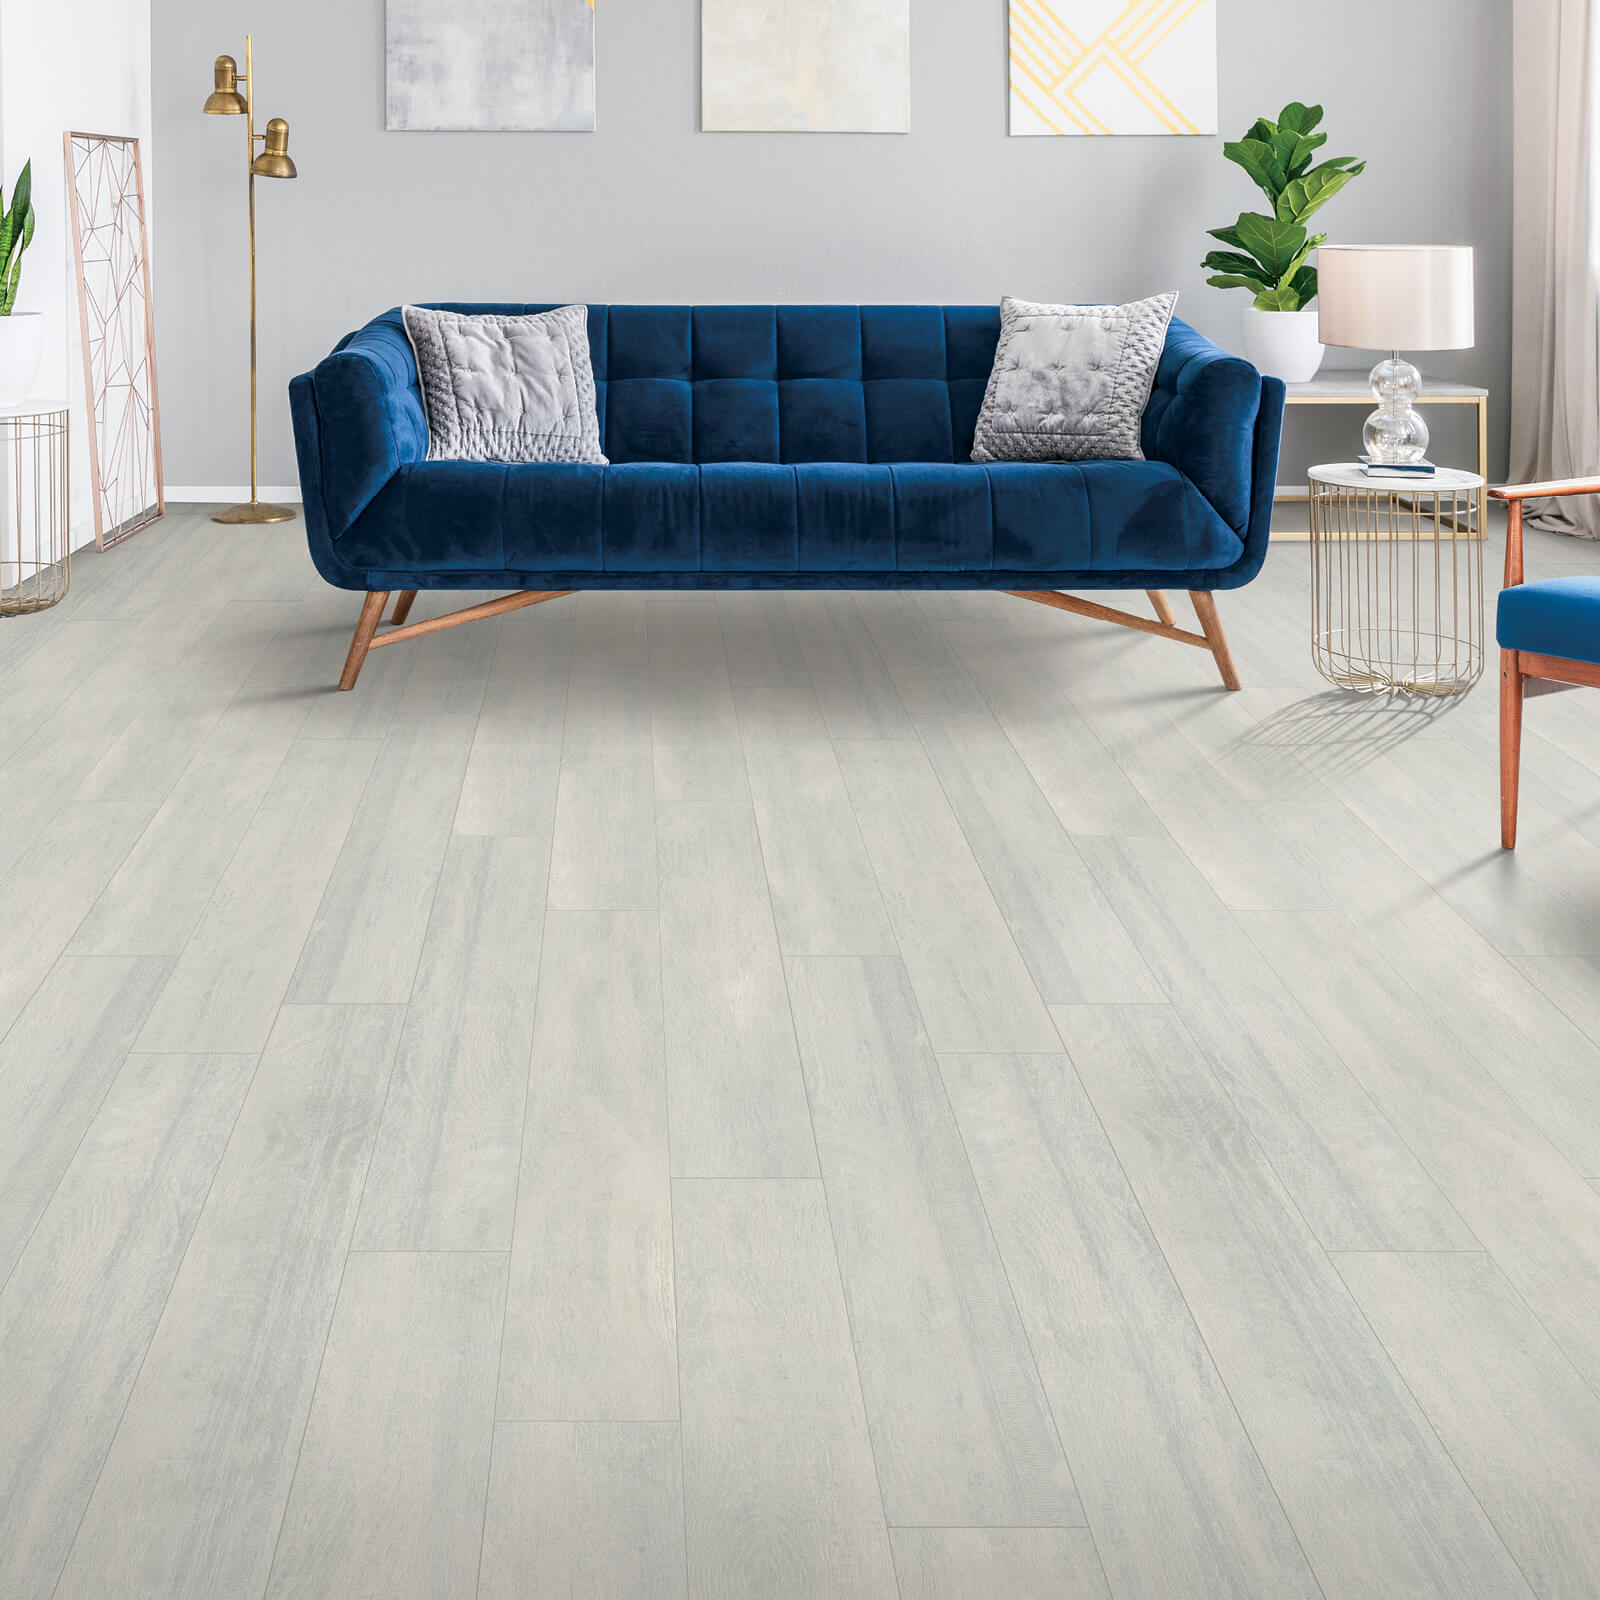 Laminate flooring | Great Floors